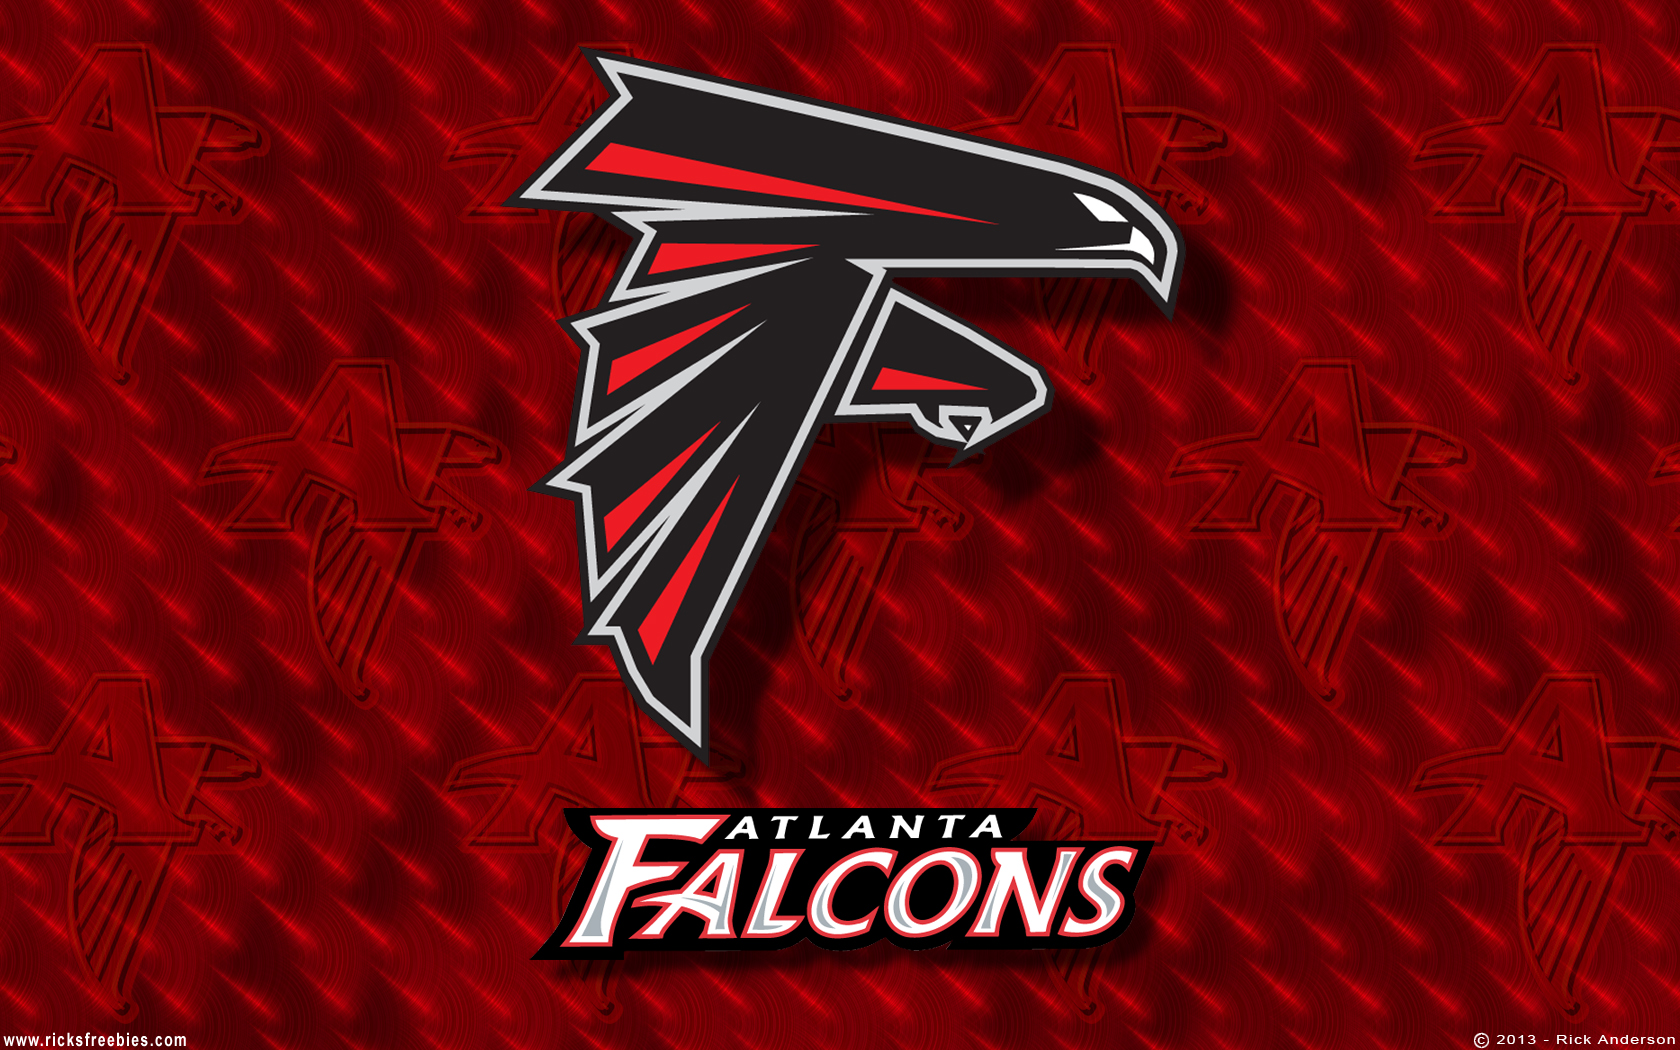 Atlanta Falcons Logo Photos Nfl Iphone Wallpapers: Atlanta Falcons Wallpaper Desktop